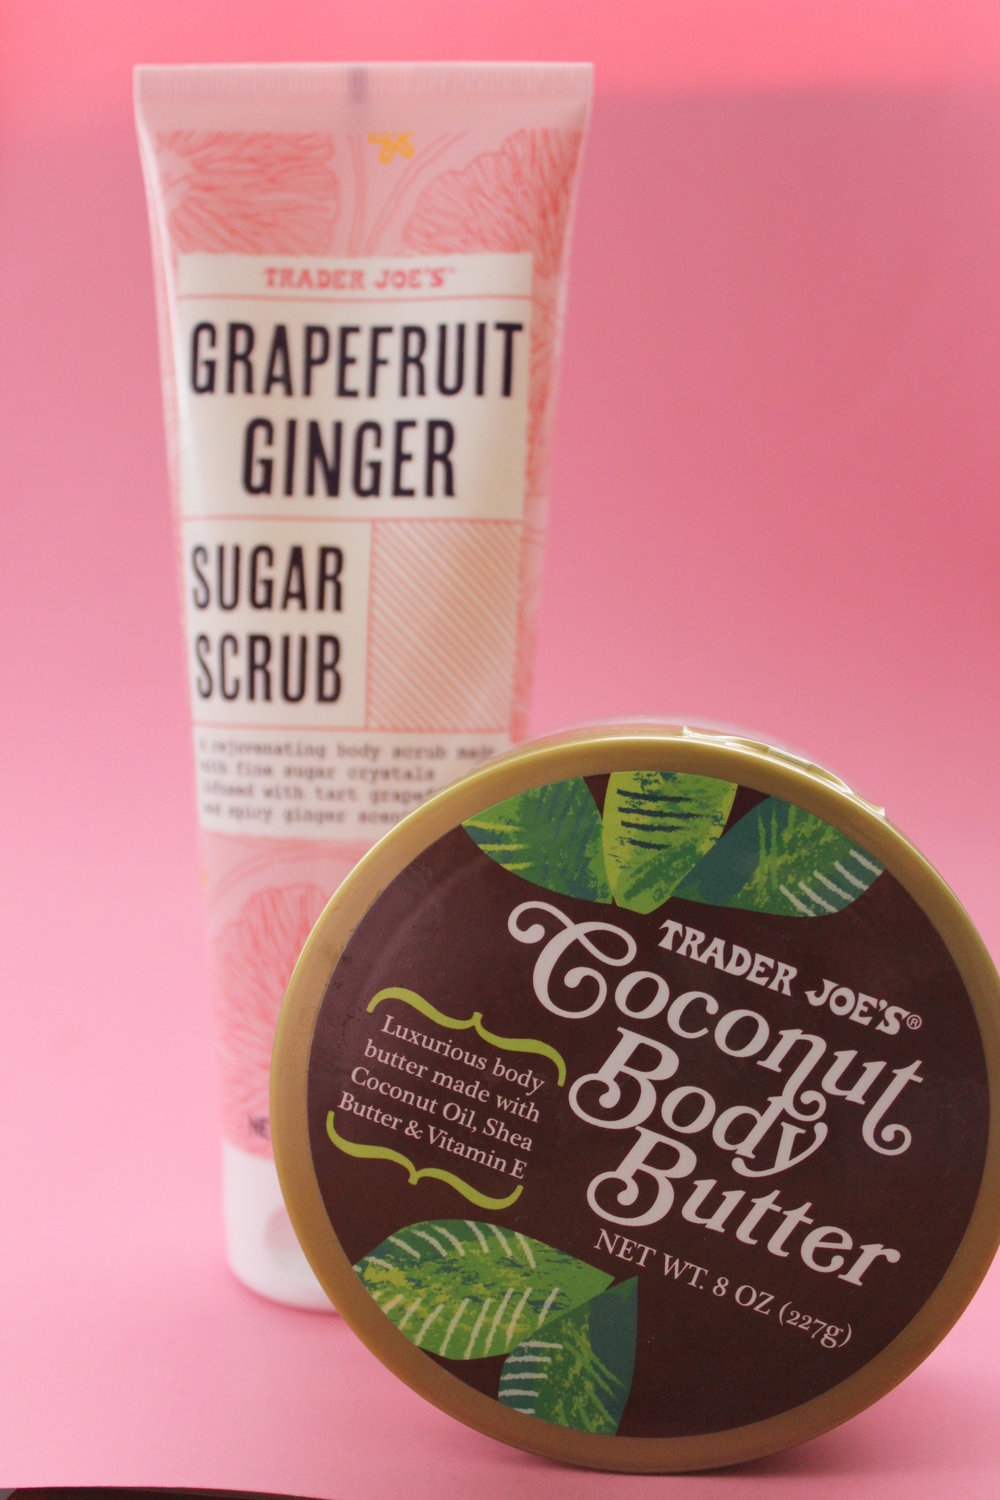 What I'm Loving From Trader Joe's in October: their Coconut Body Butter smells sooo good!